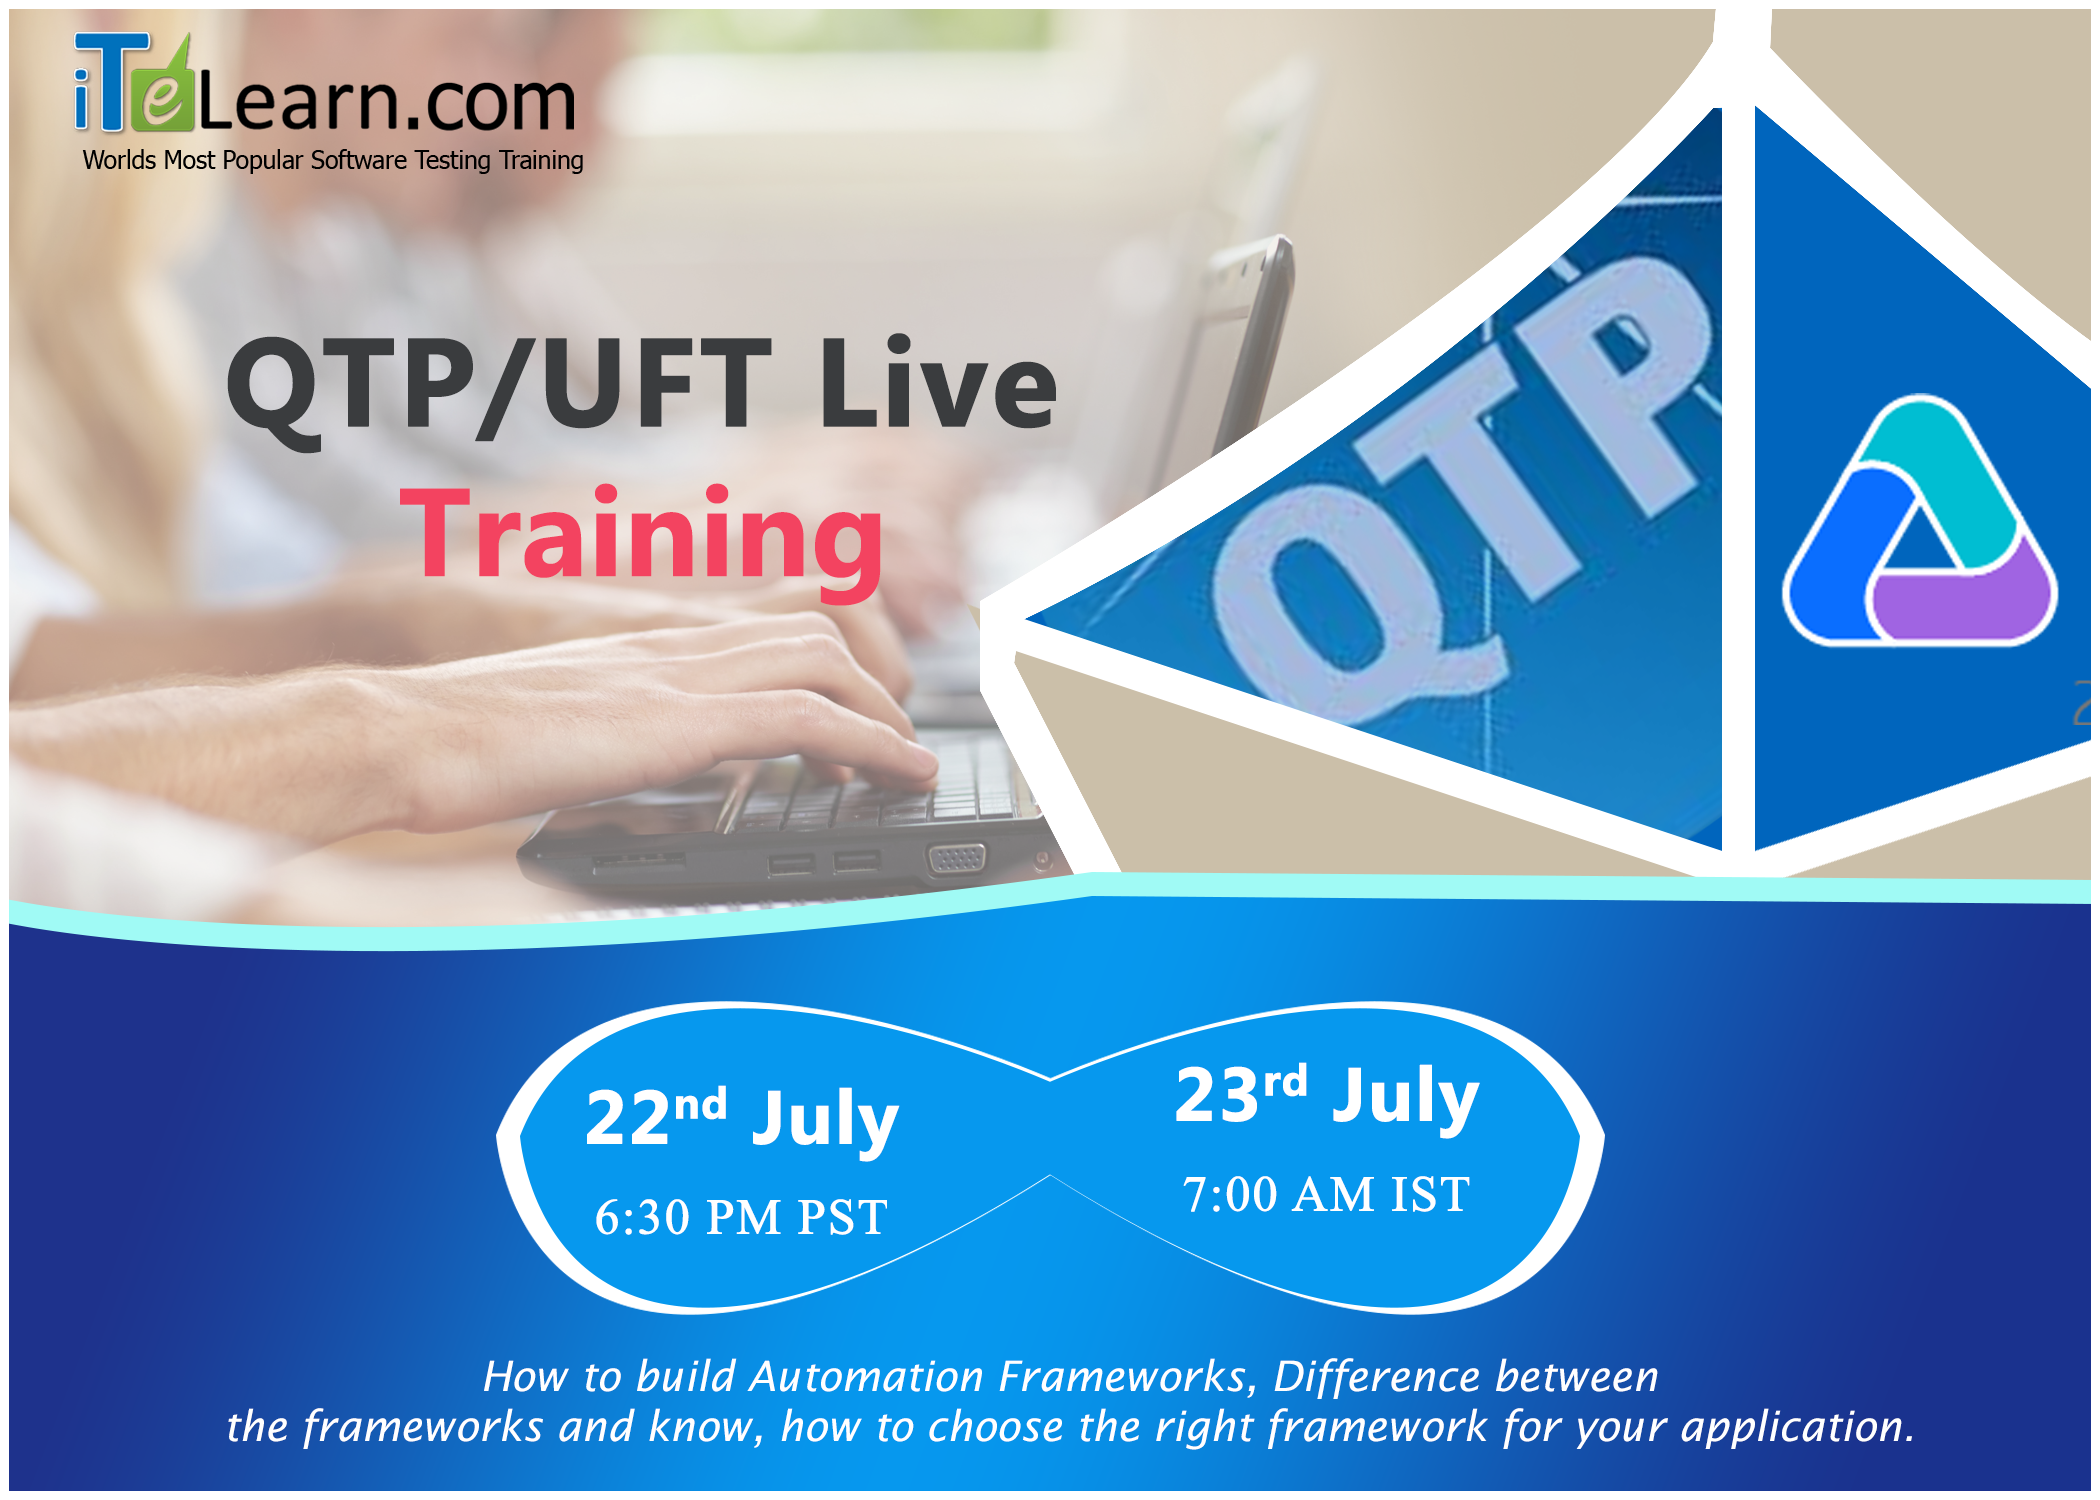 Get expose to the hottest running  #TestingTools by participating in this #LiveTraining  program on #QTP/#UFT.  --------------------------------------------------------------------------------------------------- http://www.itelearn.com/events/qtpuft-live/ These sessions will groom you to the way industry expects. Learn the basics and advanced concepts of QTP/UFT and implement them in practice. This is one of the present running  #AutomationTestingTool with ample of opportunities in your…